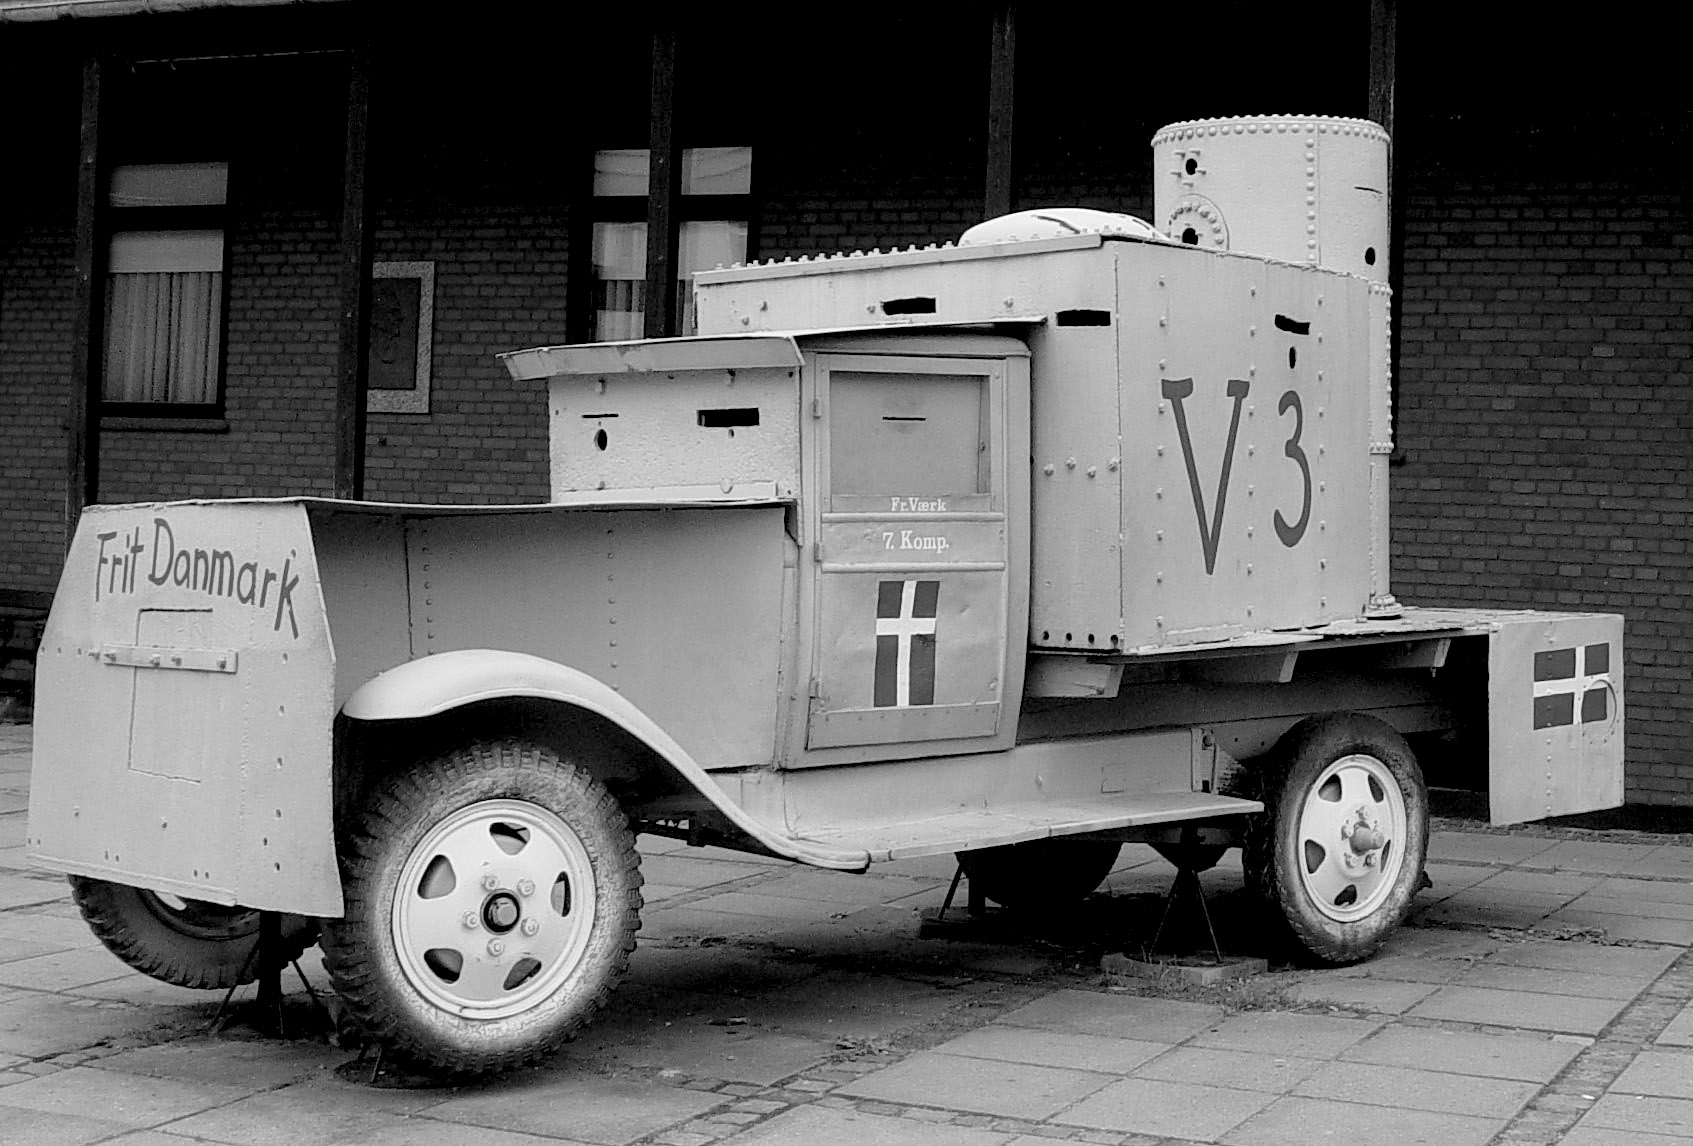 Vehicle built by railway shop workers for the Danish resistance movement